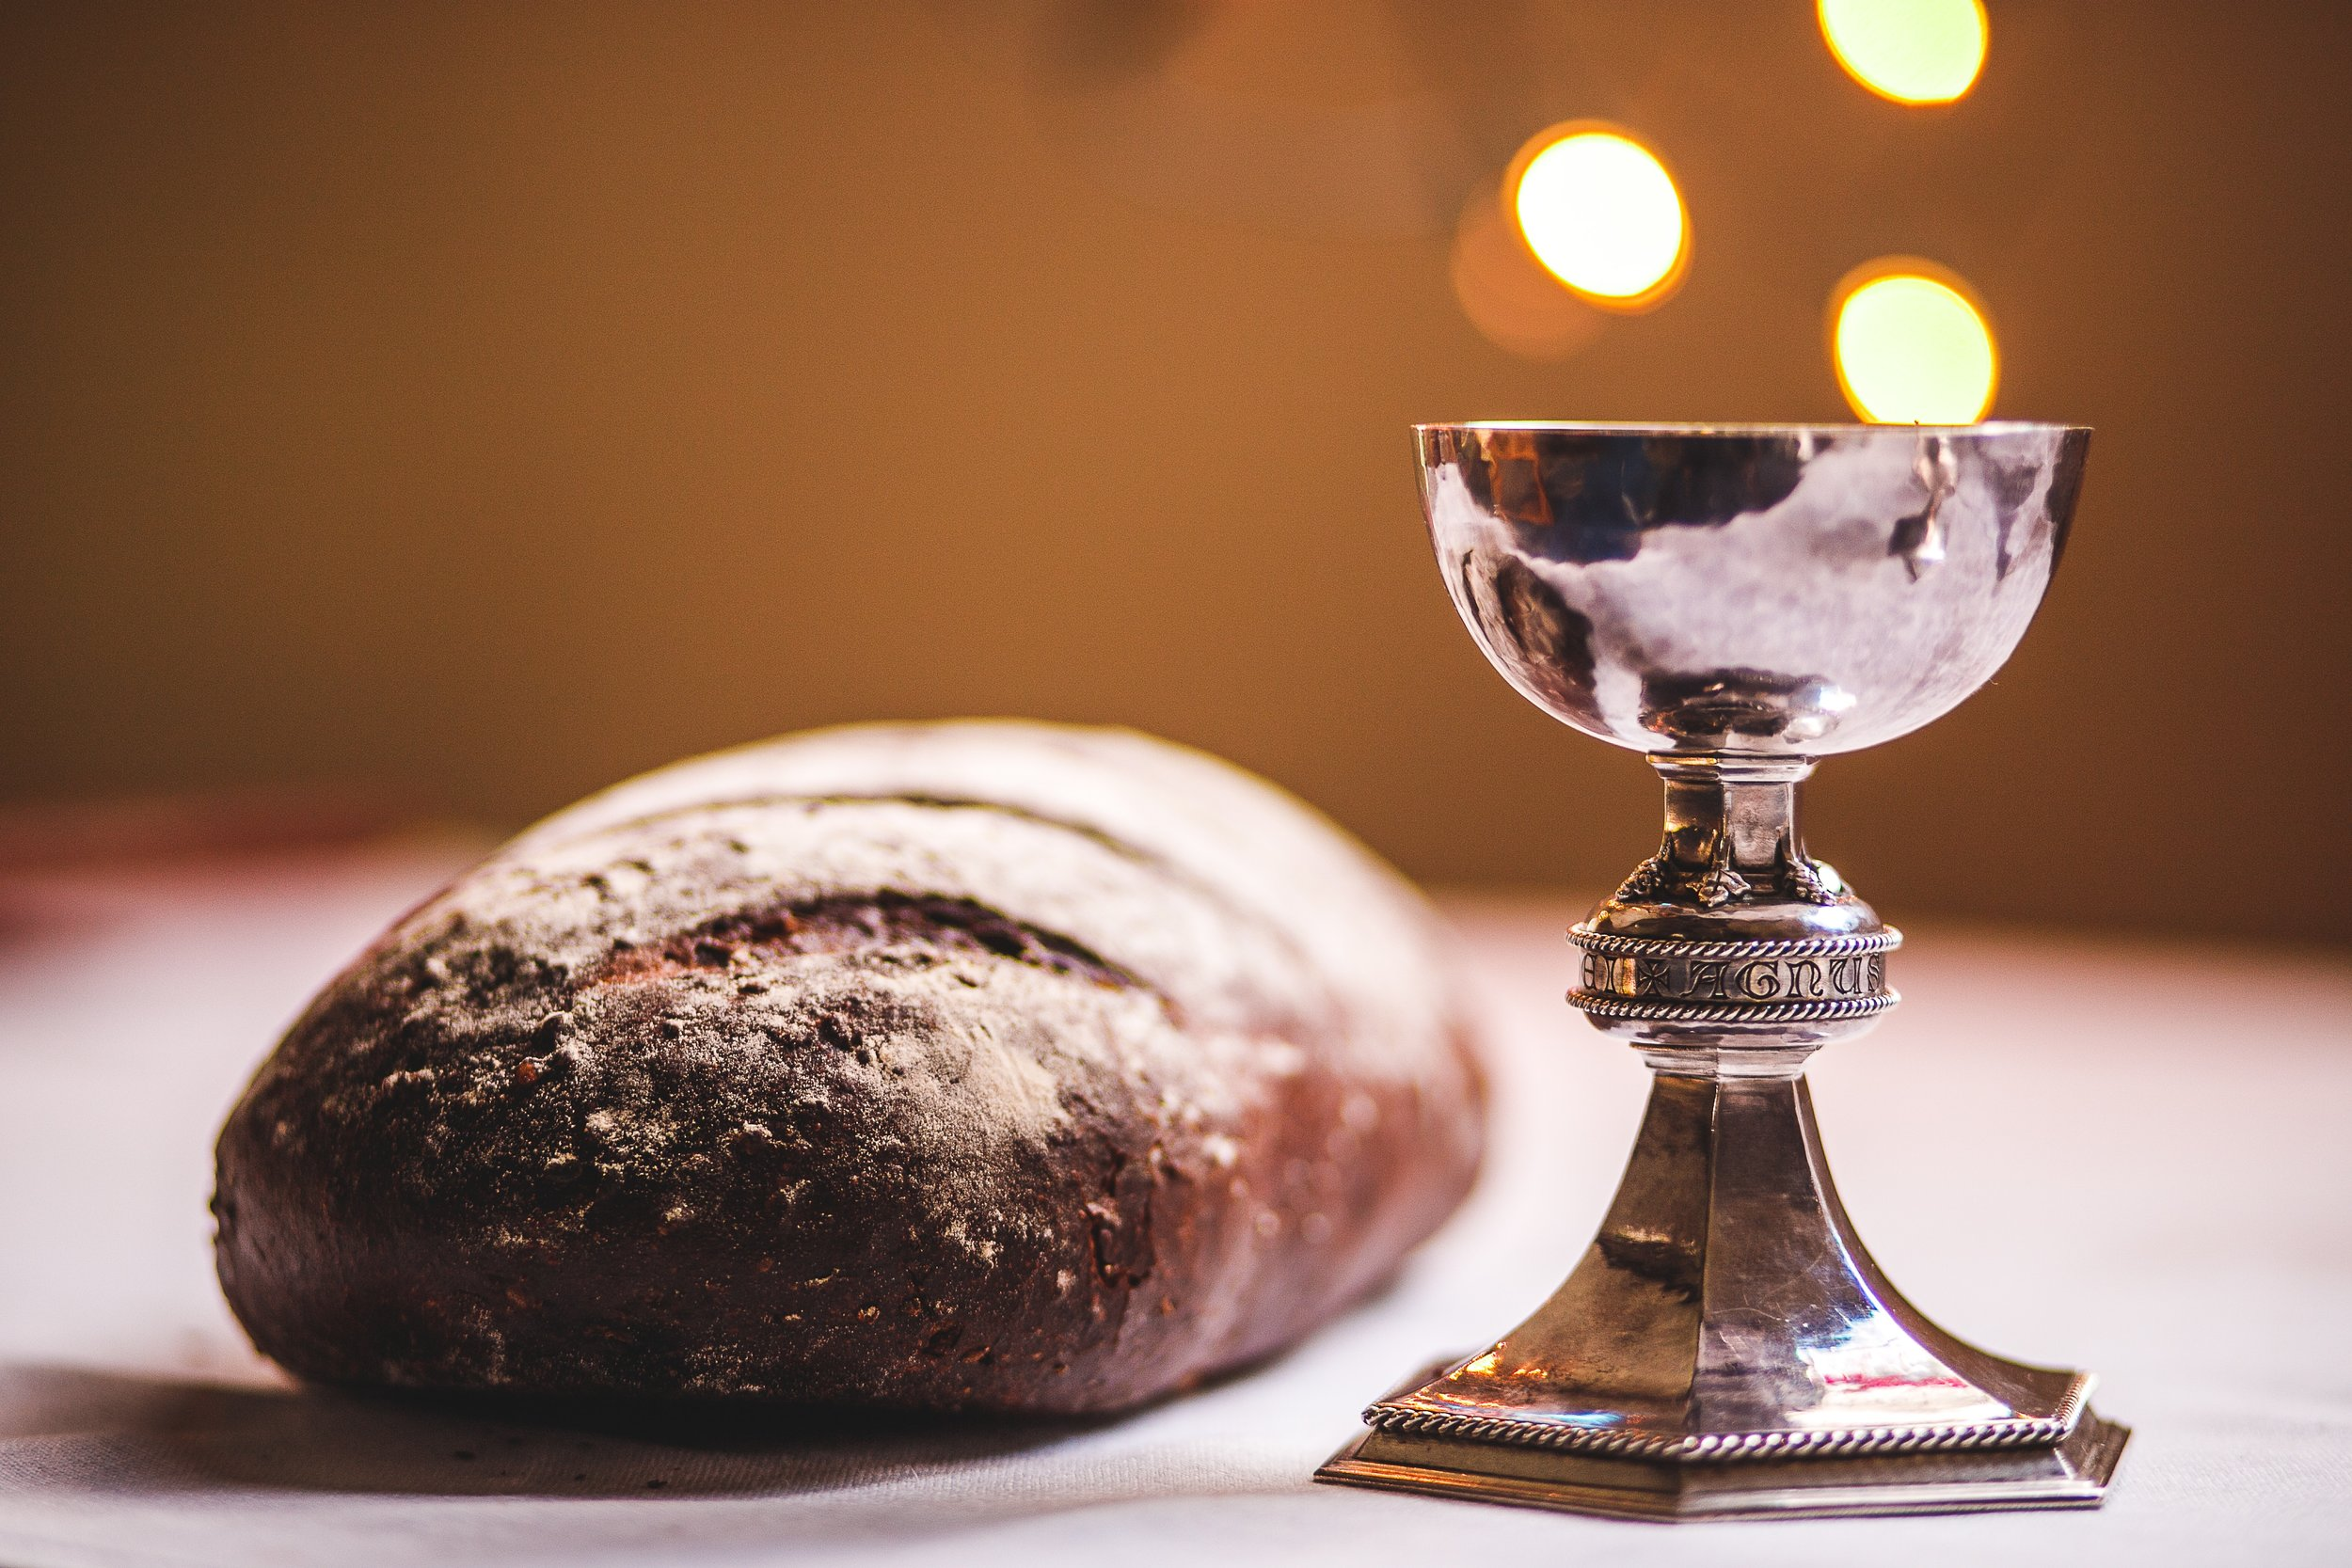 A photograph of bread and wine